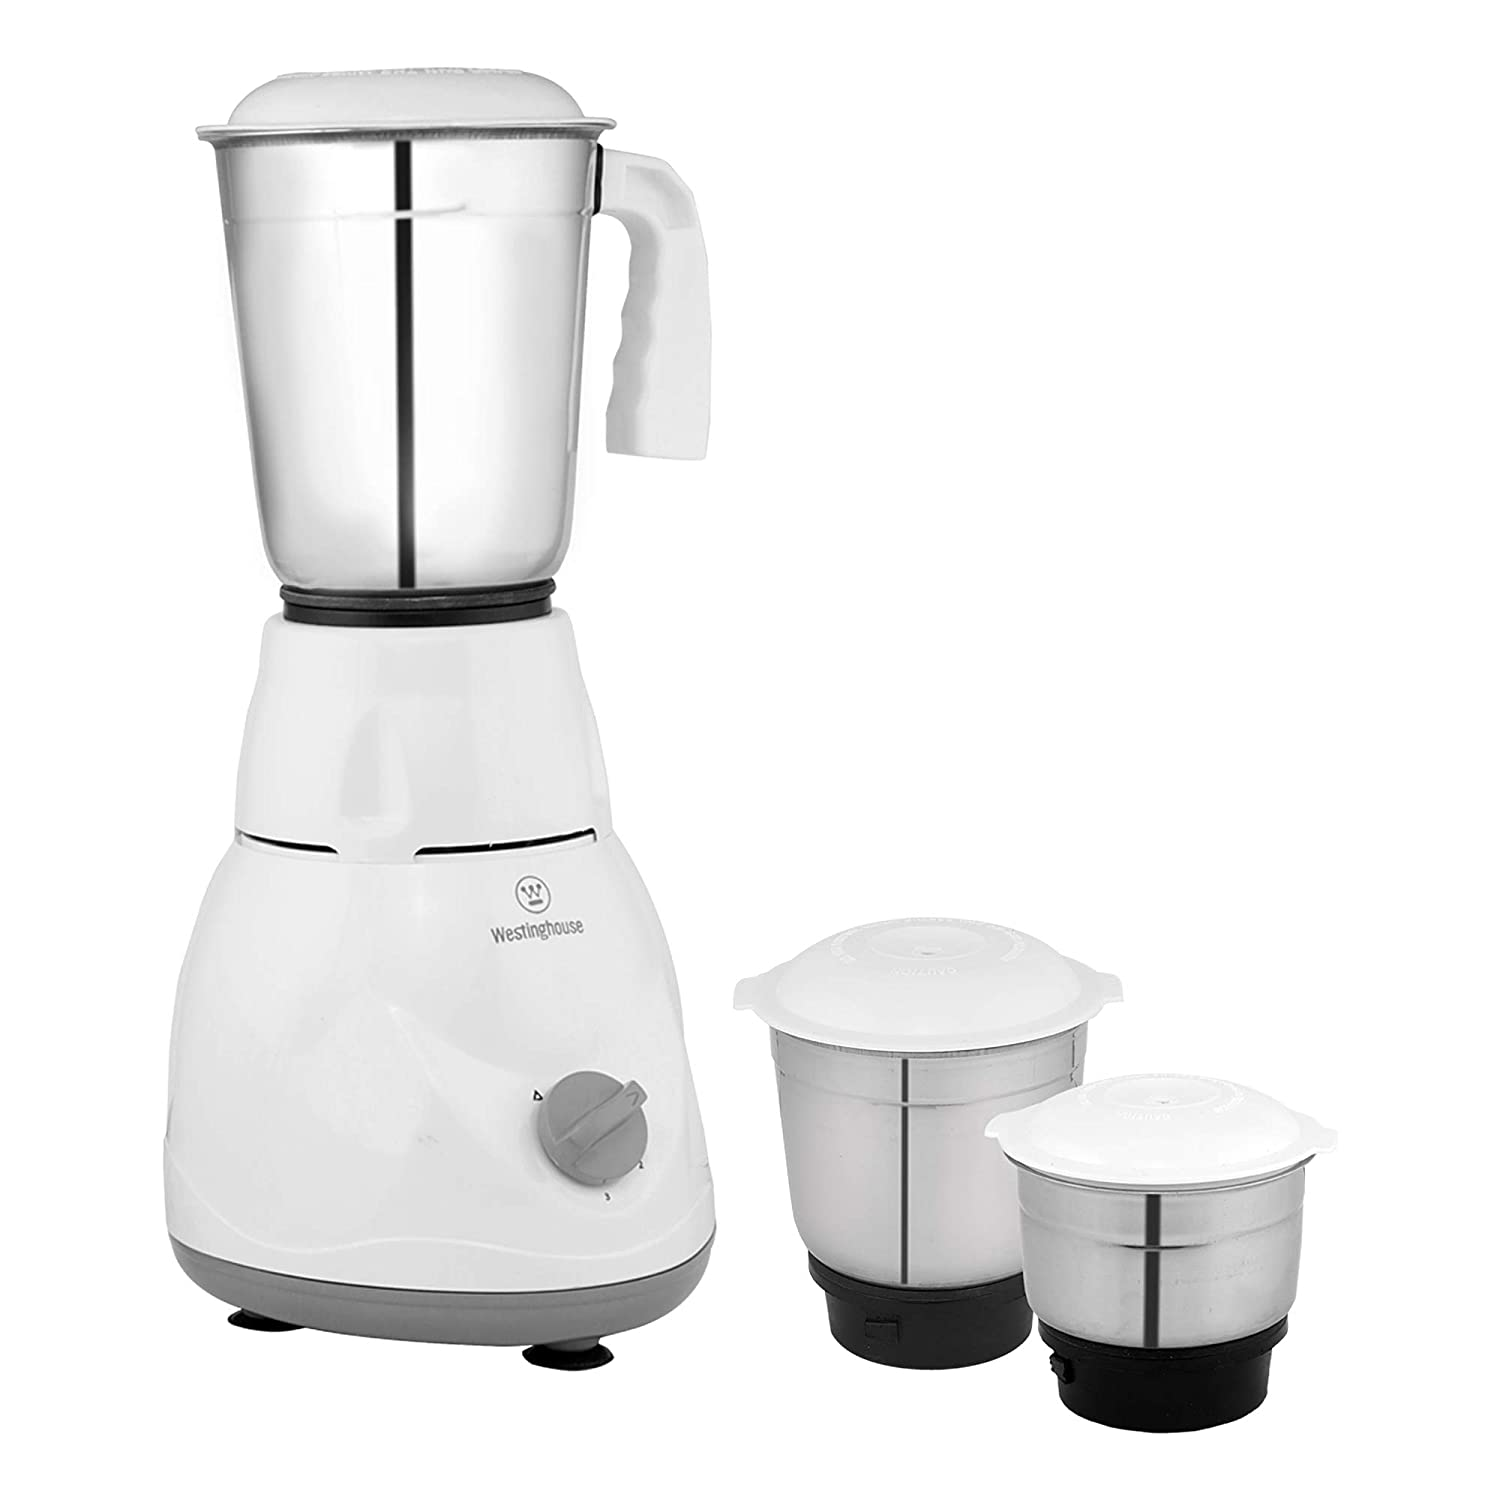 Westinghouse M50W3A-DJ 500 W Mixer Grinder with 3 Jars (White)